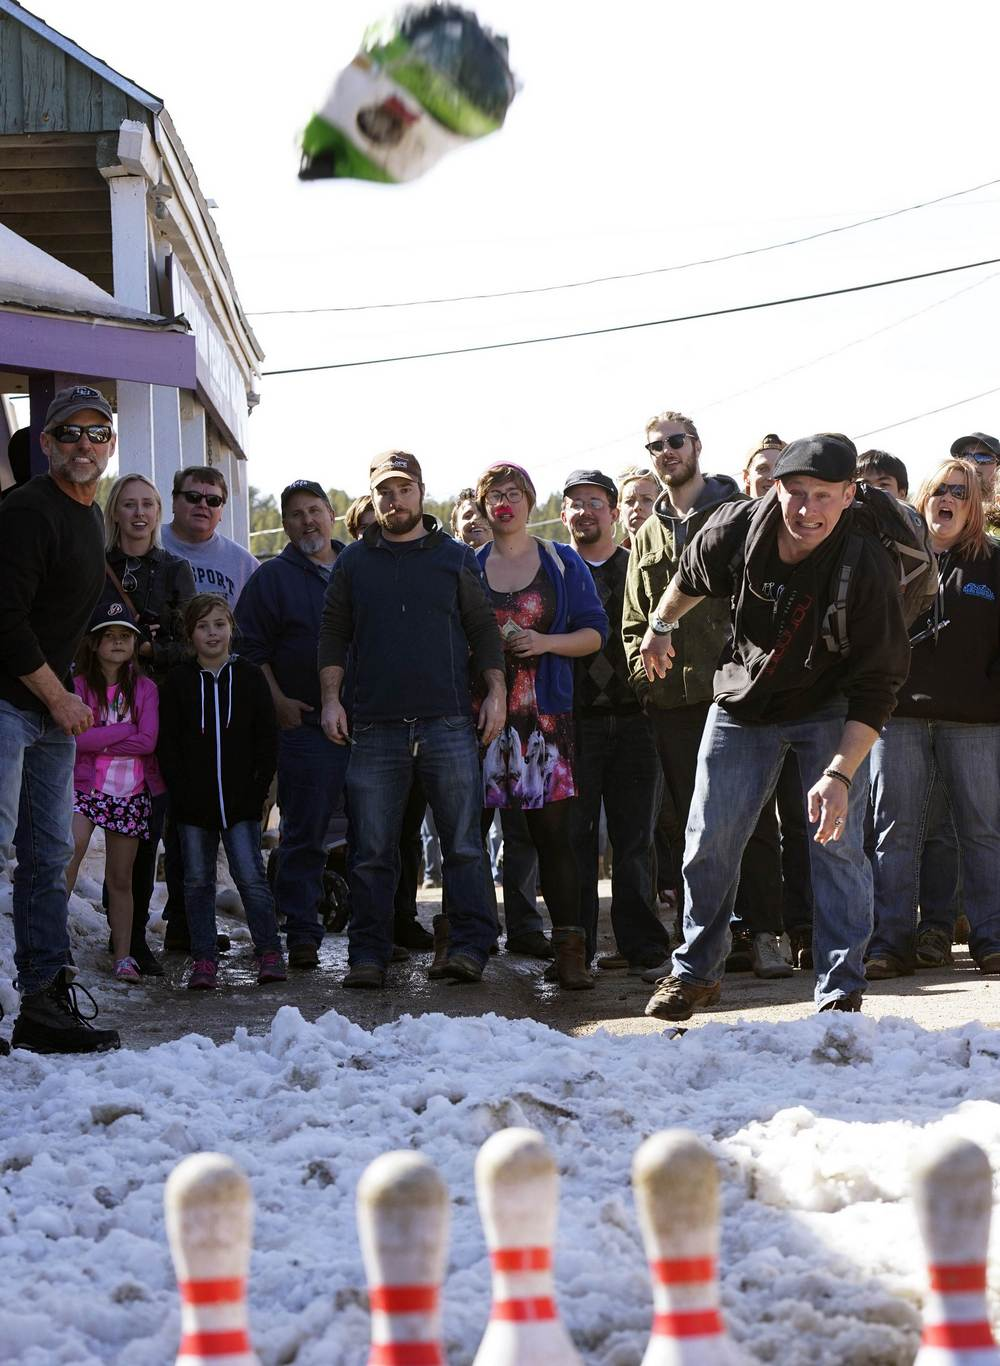 A man competes in Frozen Turkey Bowling event at Frozen Dead Guy Days in Nederland